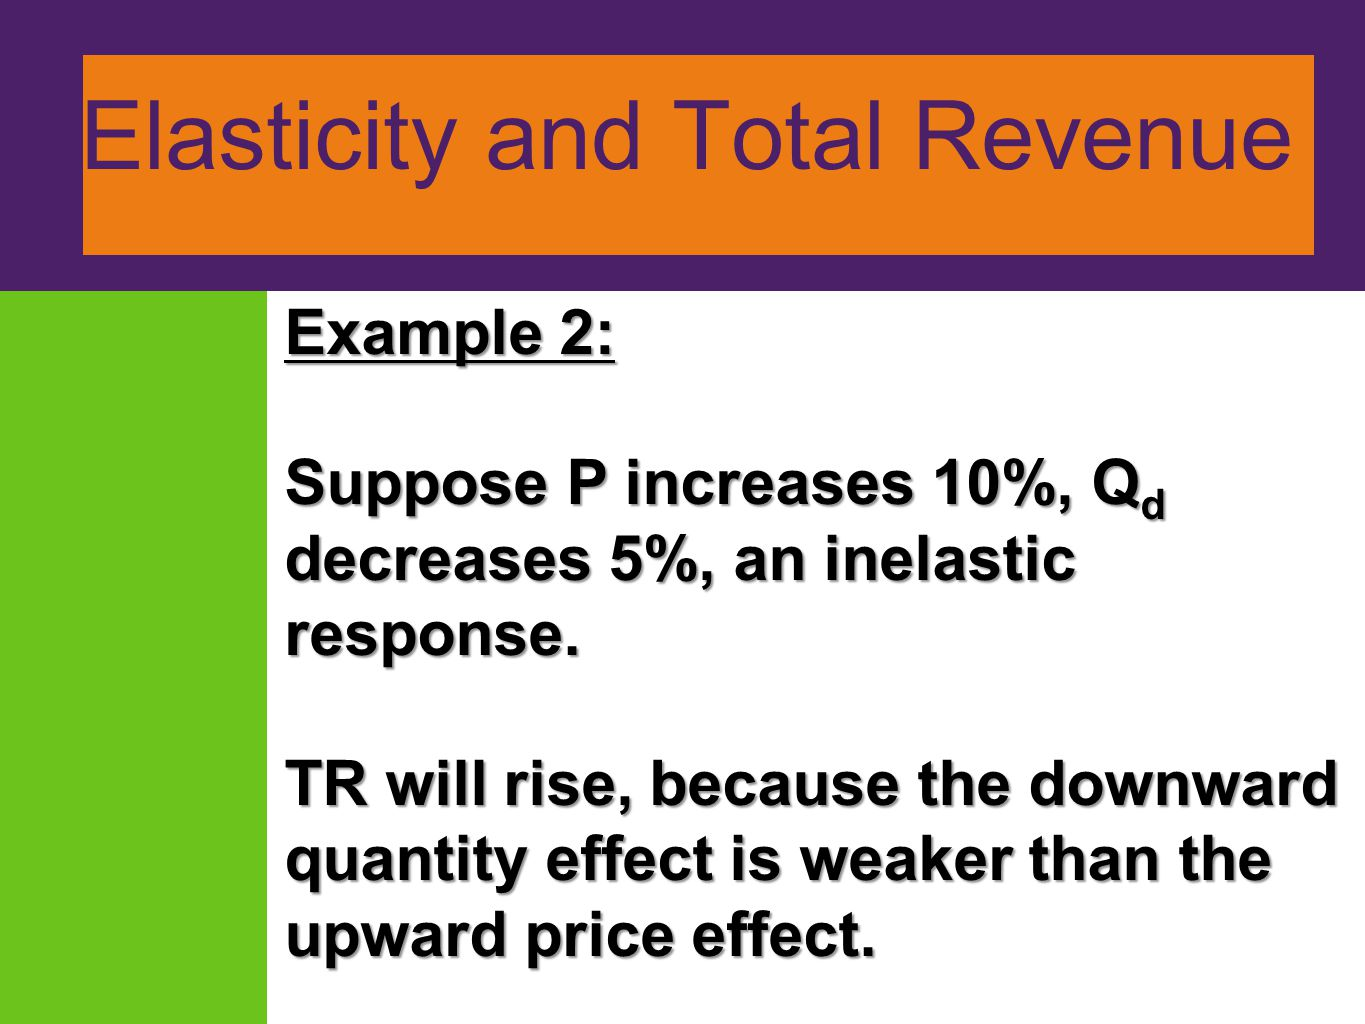 Elasticity and Total Revenue Example 2: Suppose P increases 10%, Q d decreases 5%, an inelastic response. TR will rise, because the downward quantity